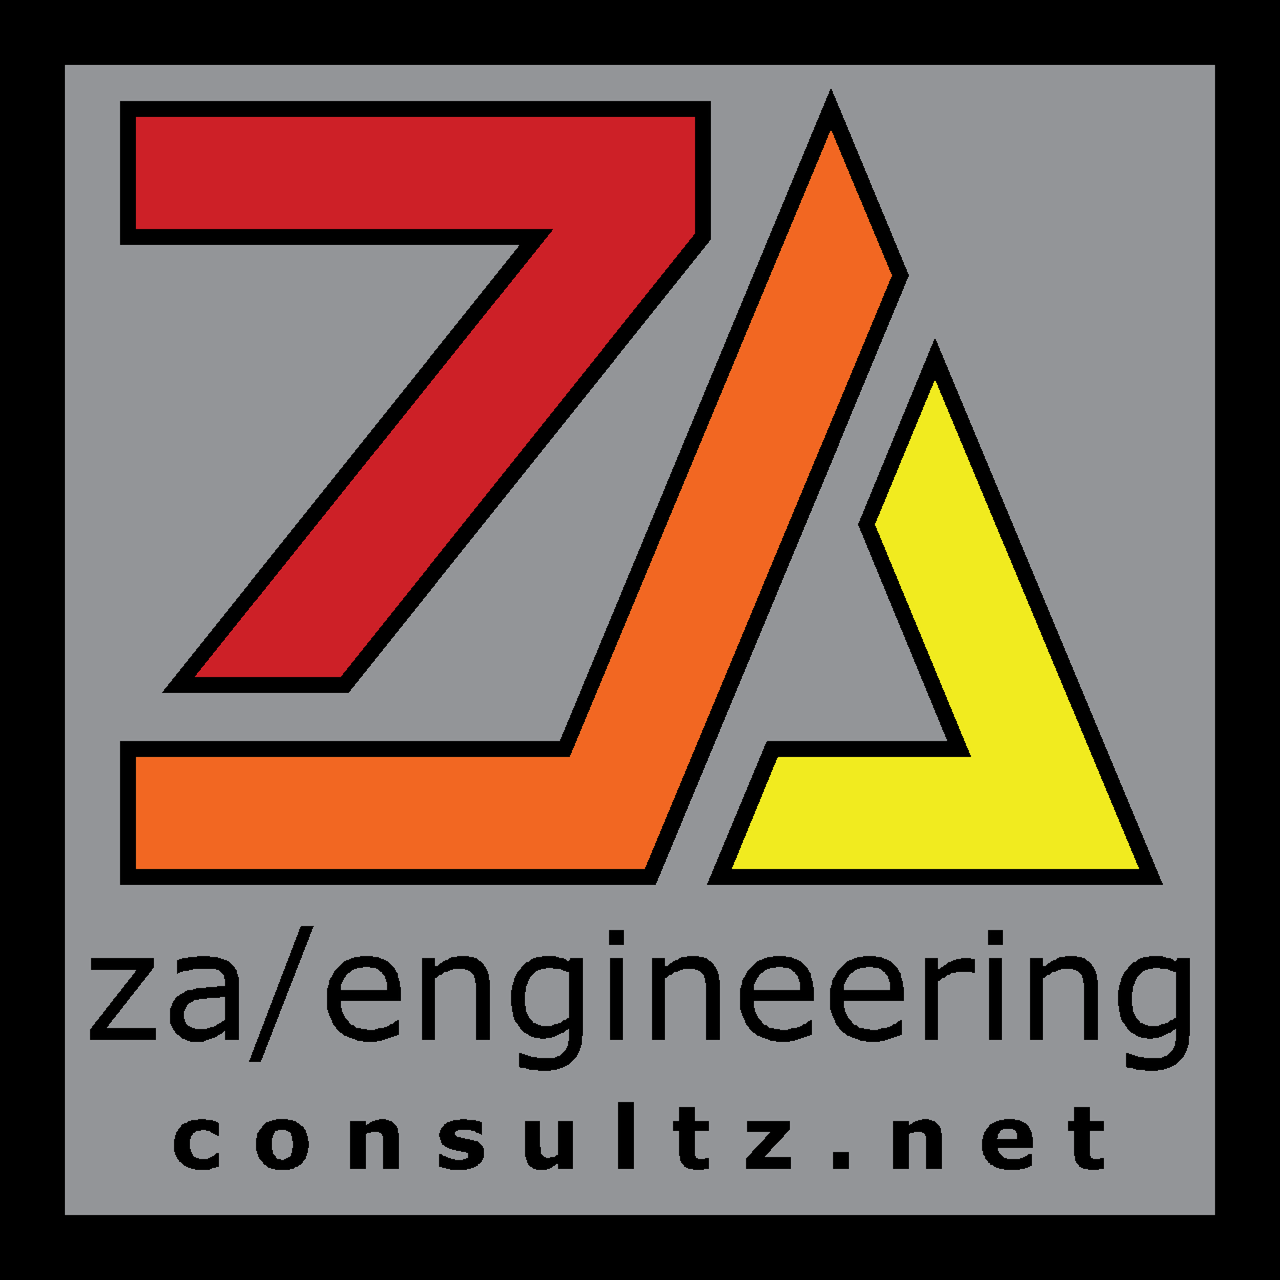 za/engineering